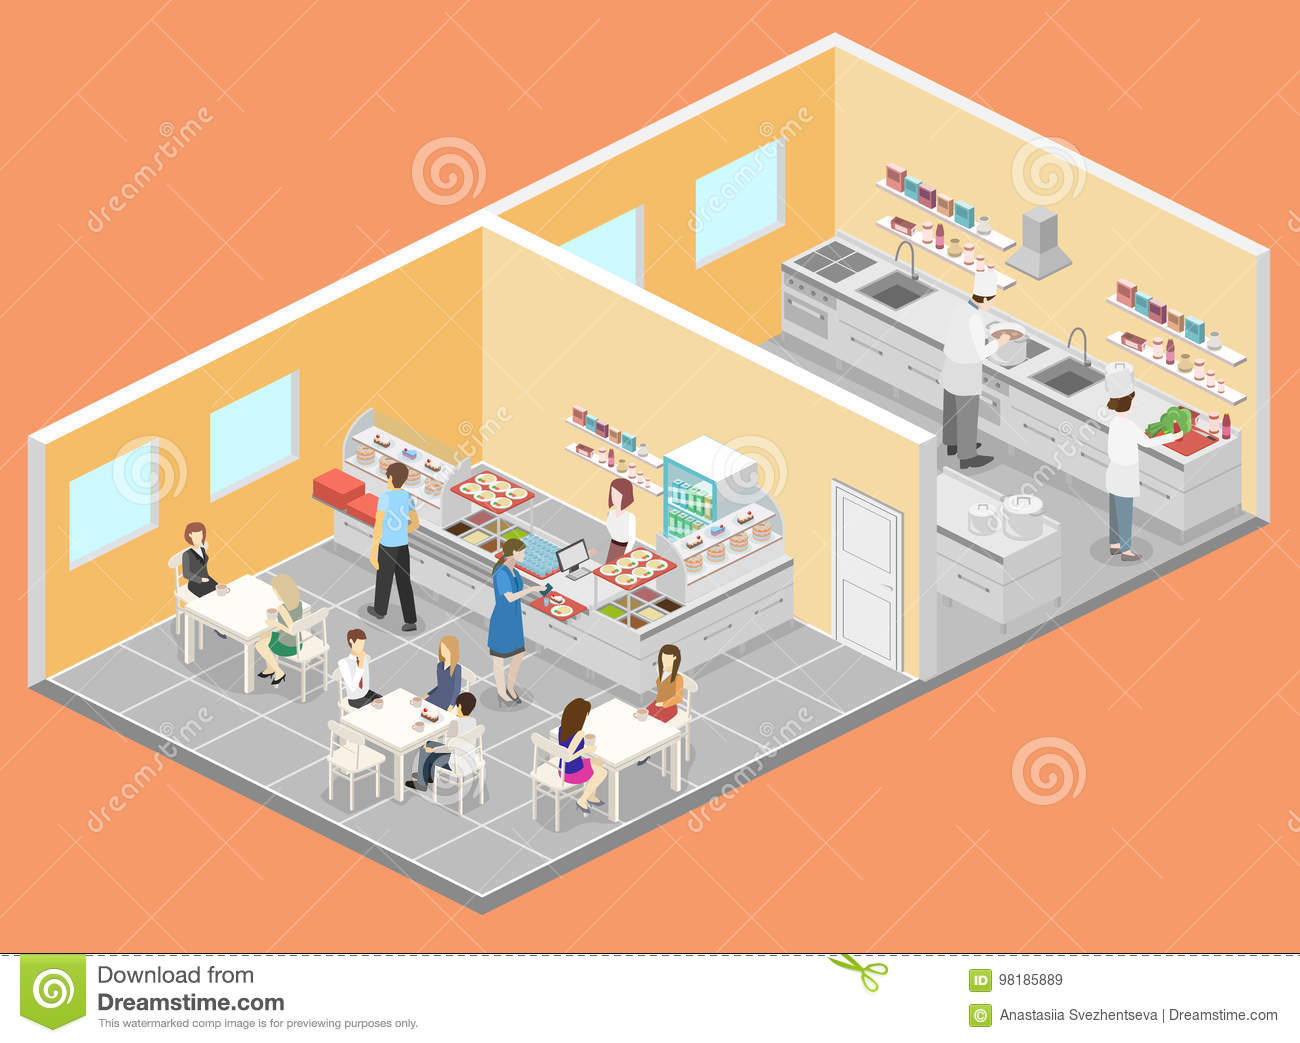 Restaurant Kitchen Illustration isometric flat 3d interior of cafe, canteen and restaurant kitchen